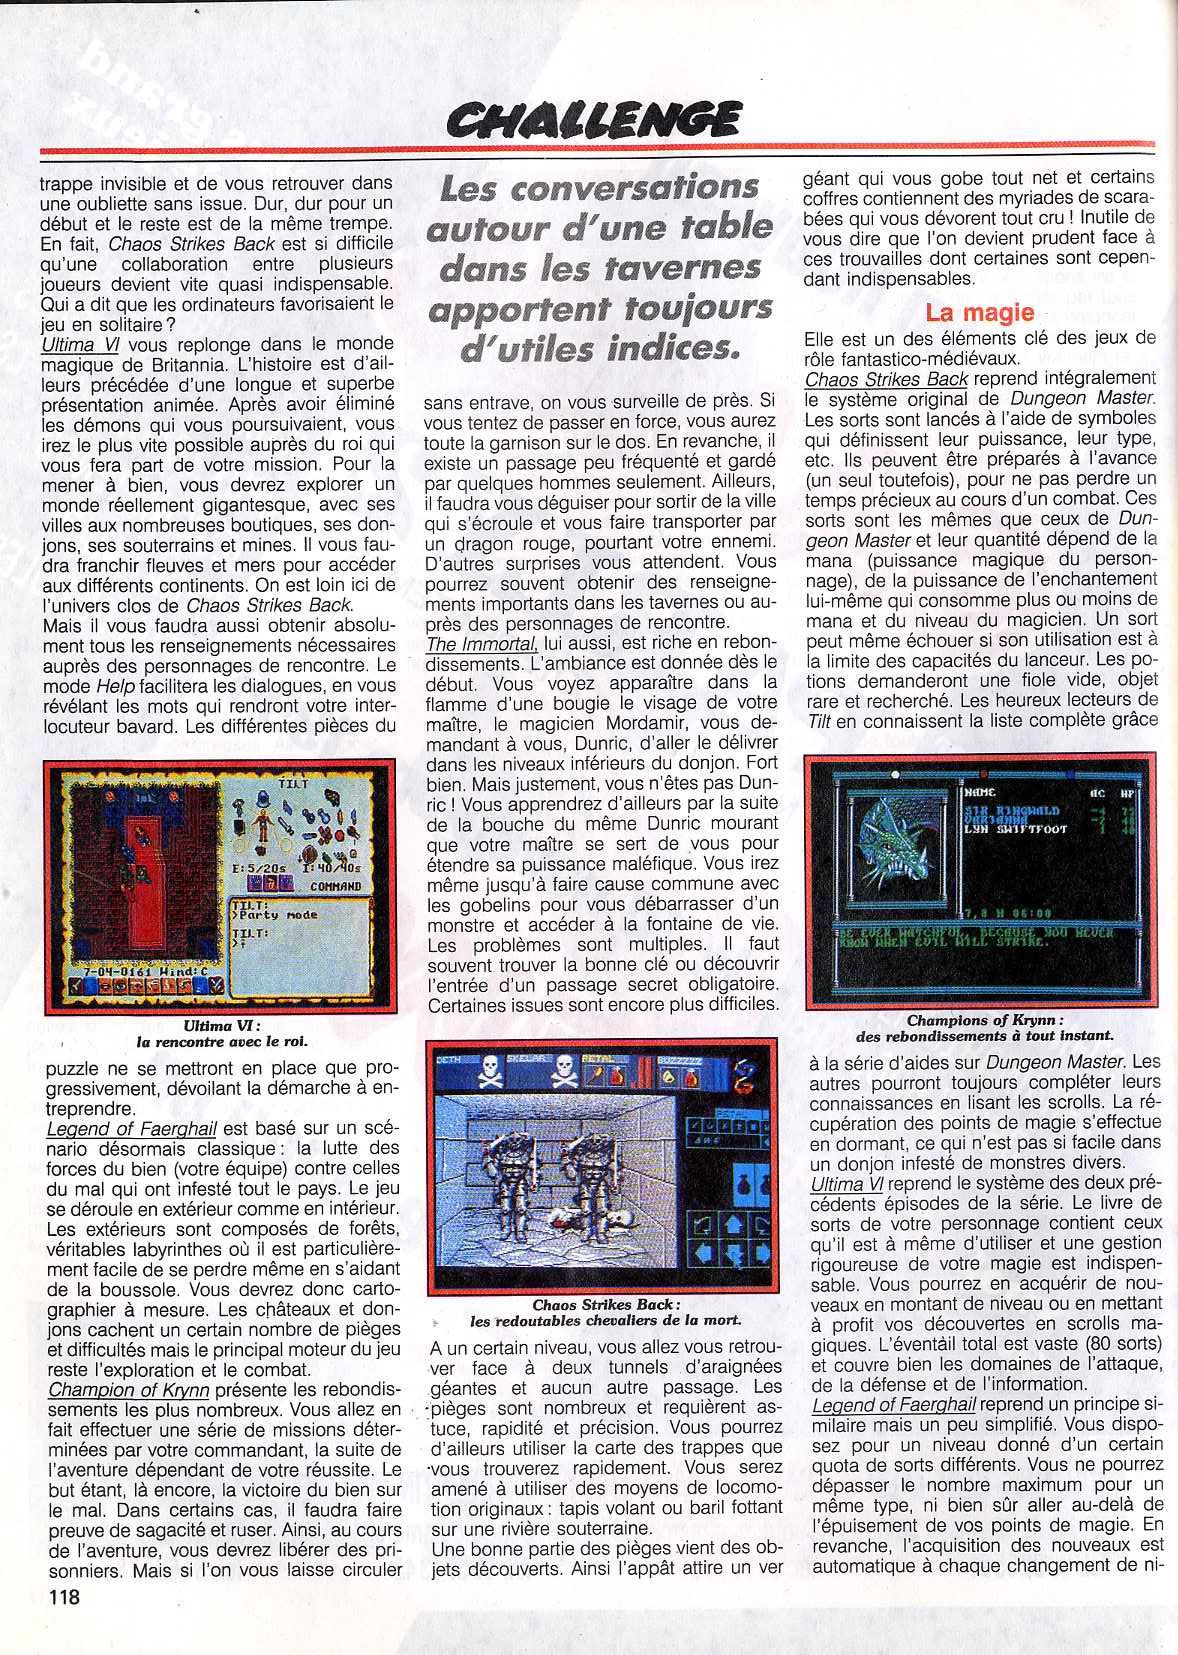 Chaos Strikes Back Article published in French magazine 'Tilt', Issue #83 November 1990, Page 118